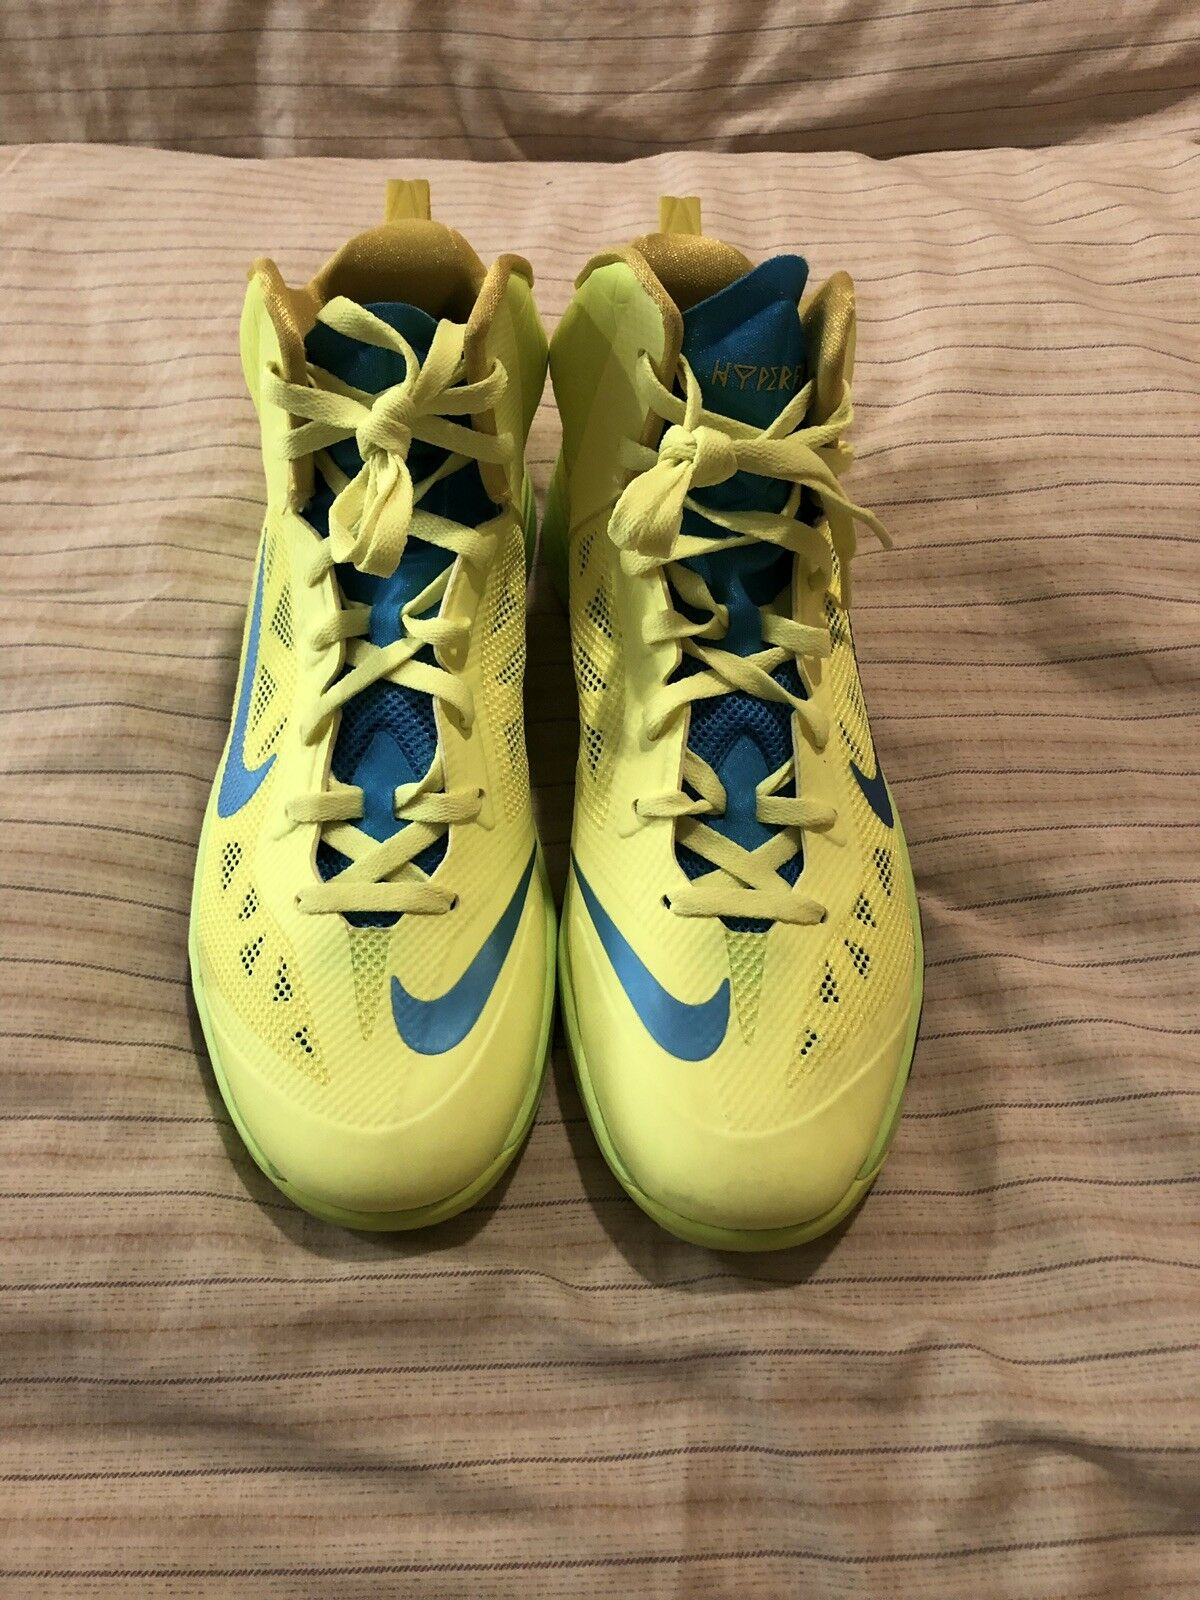 Brand New  Nike Zoom Hyperfuse 2013 Volt Green Yellow bluee Citron 12 Basketball